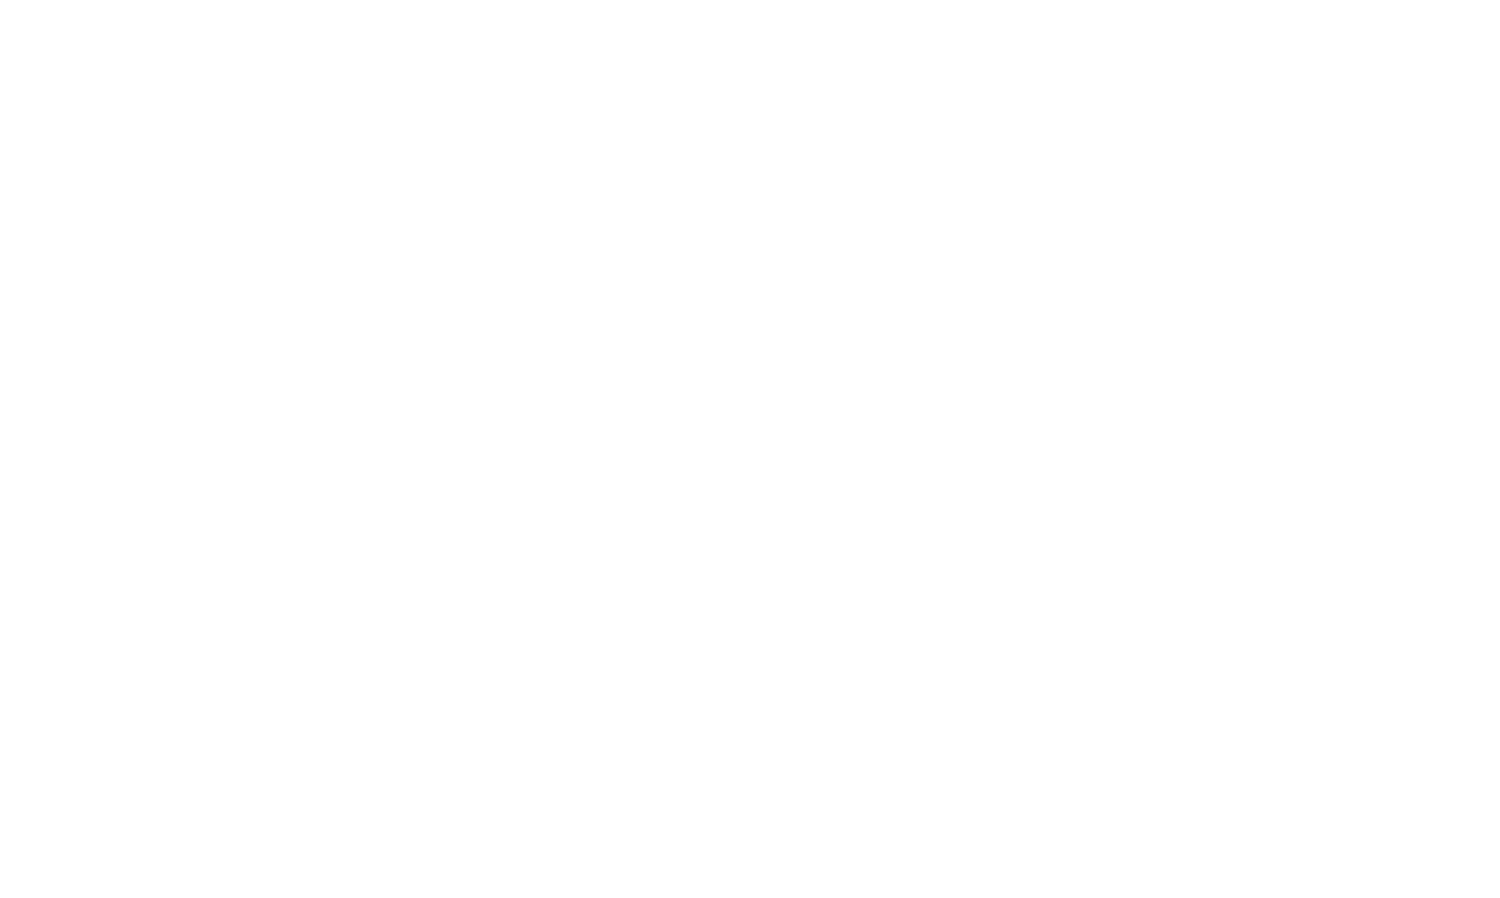 Civil Axe Throwing